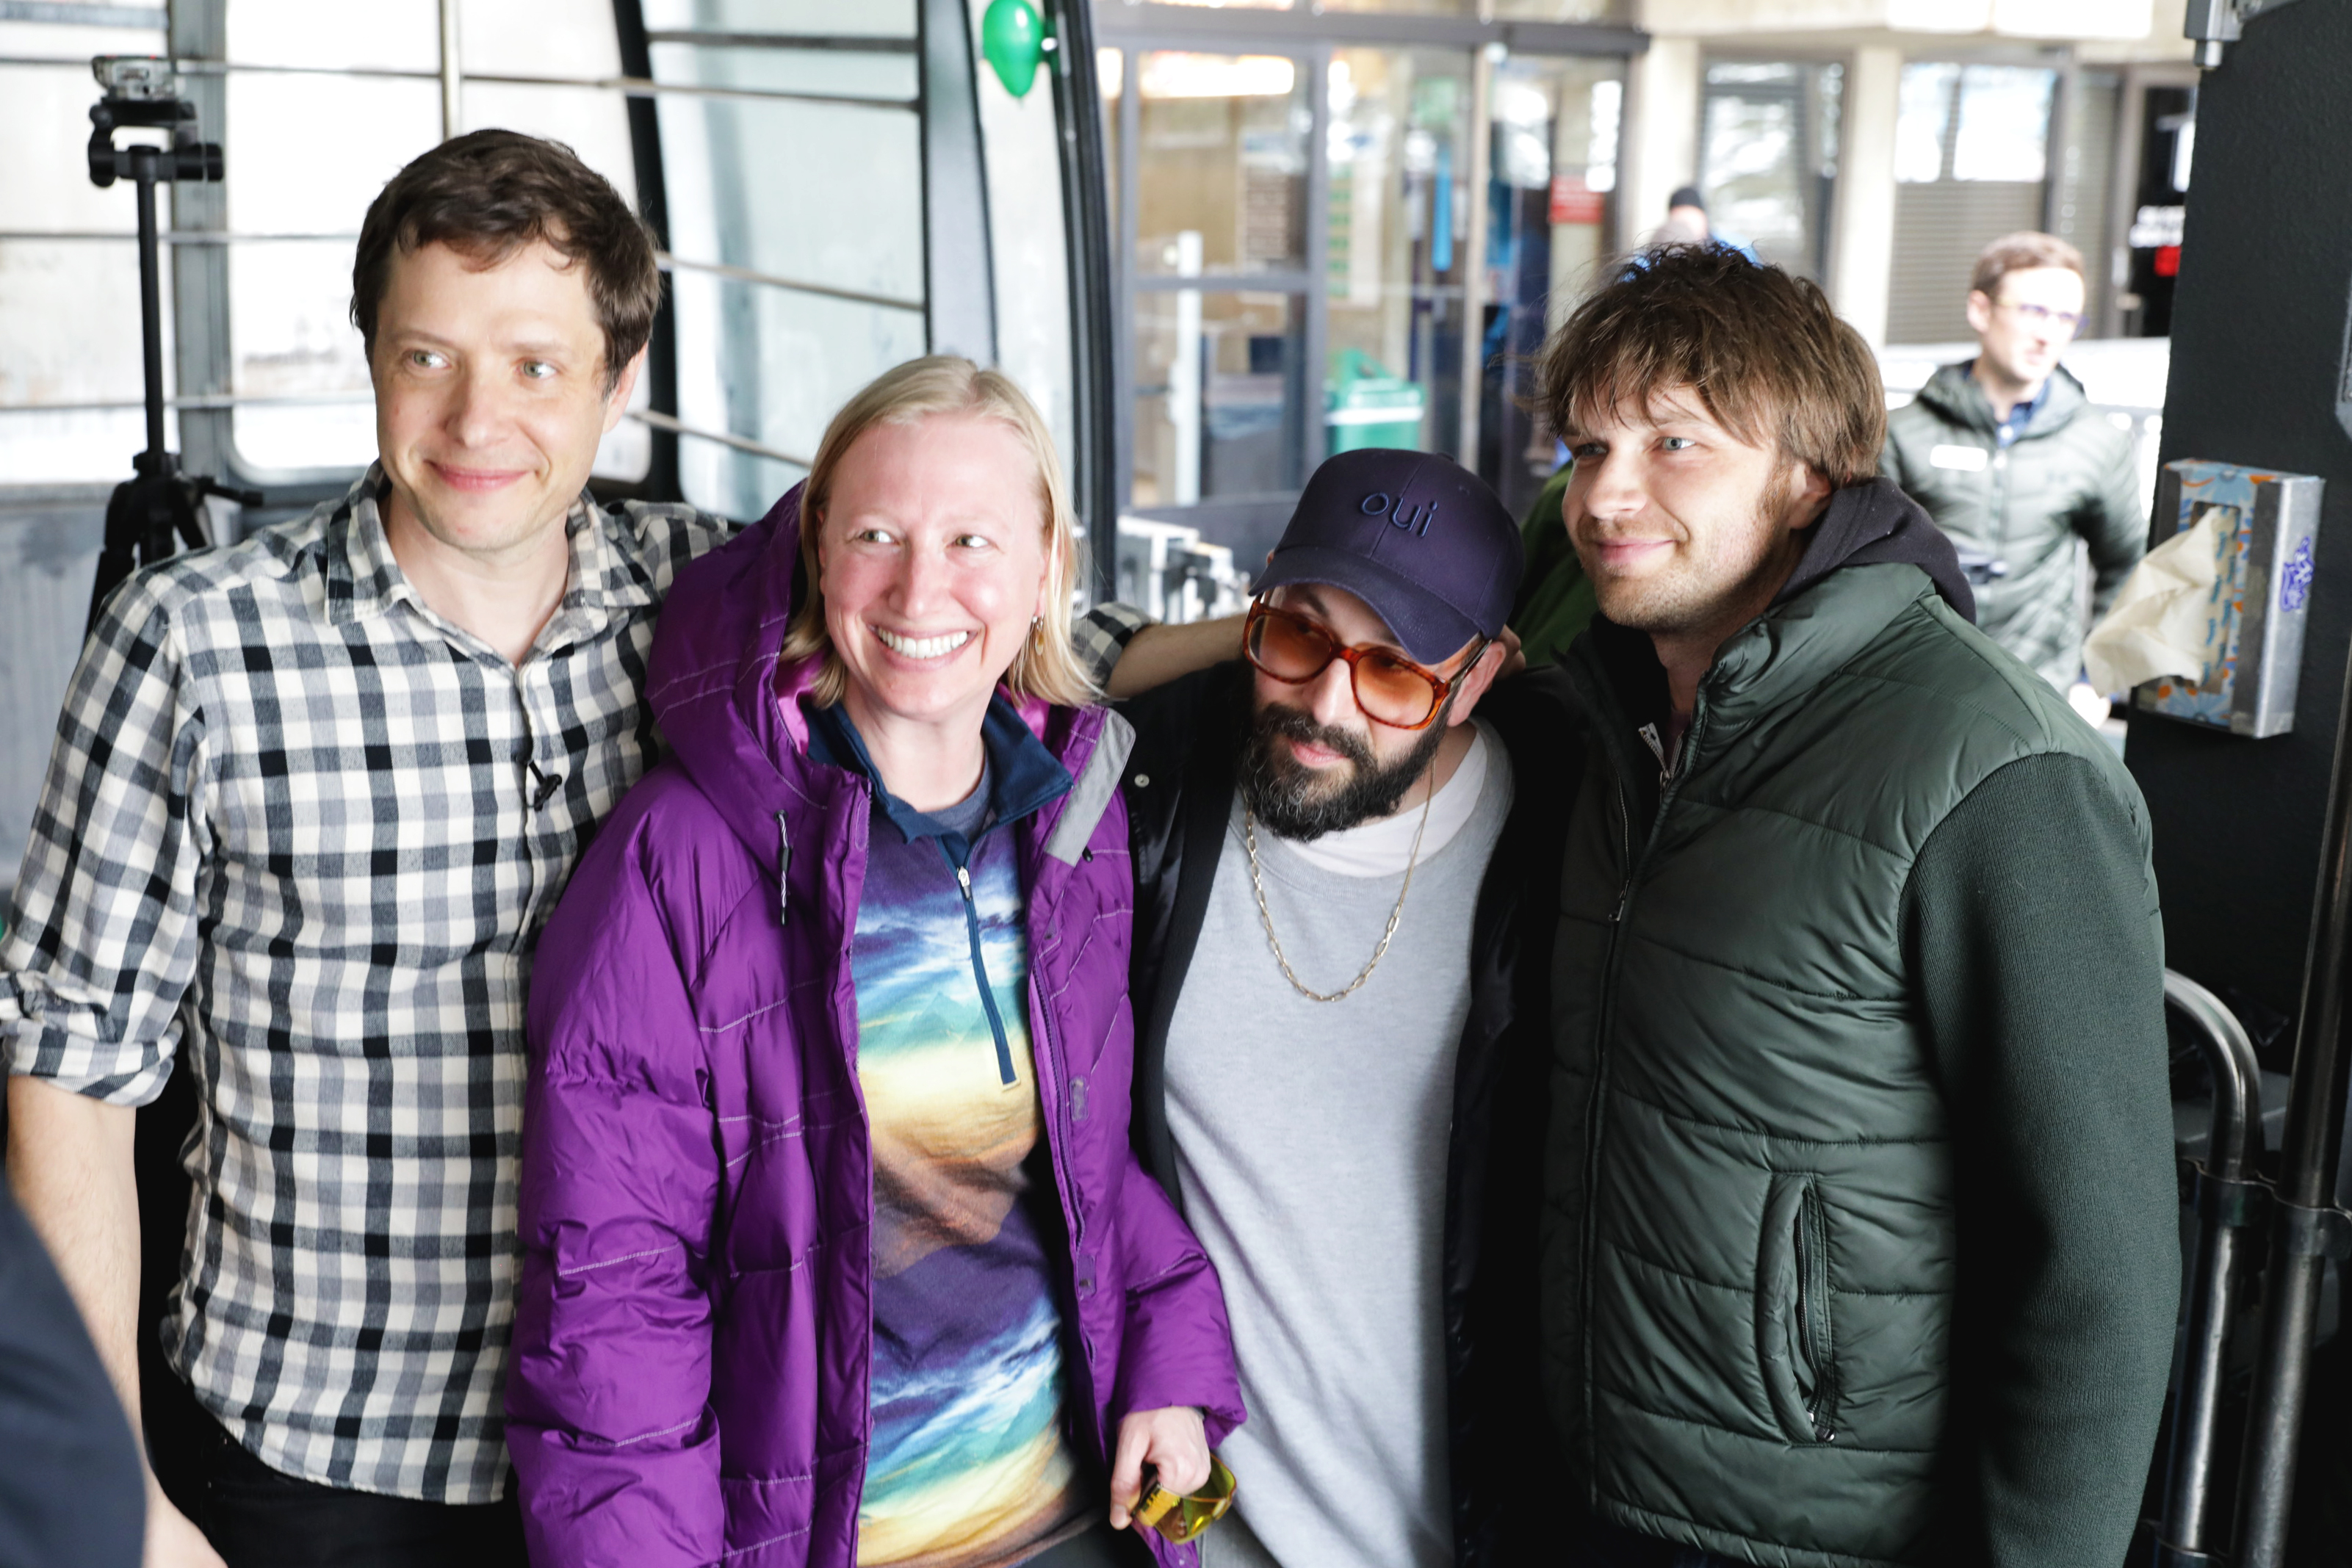 OK Go members pose with a fan for a photo. Photo: Lmsorenson.net